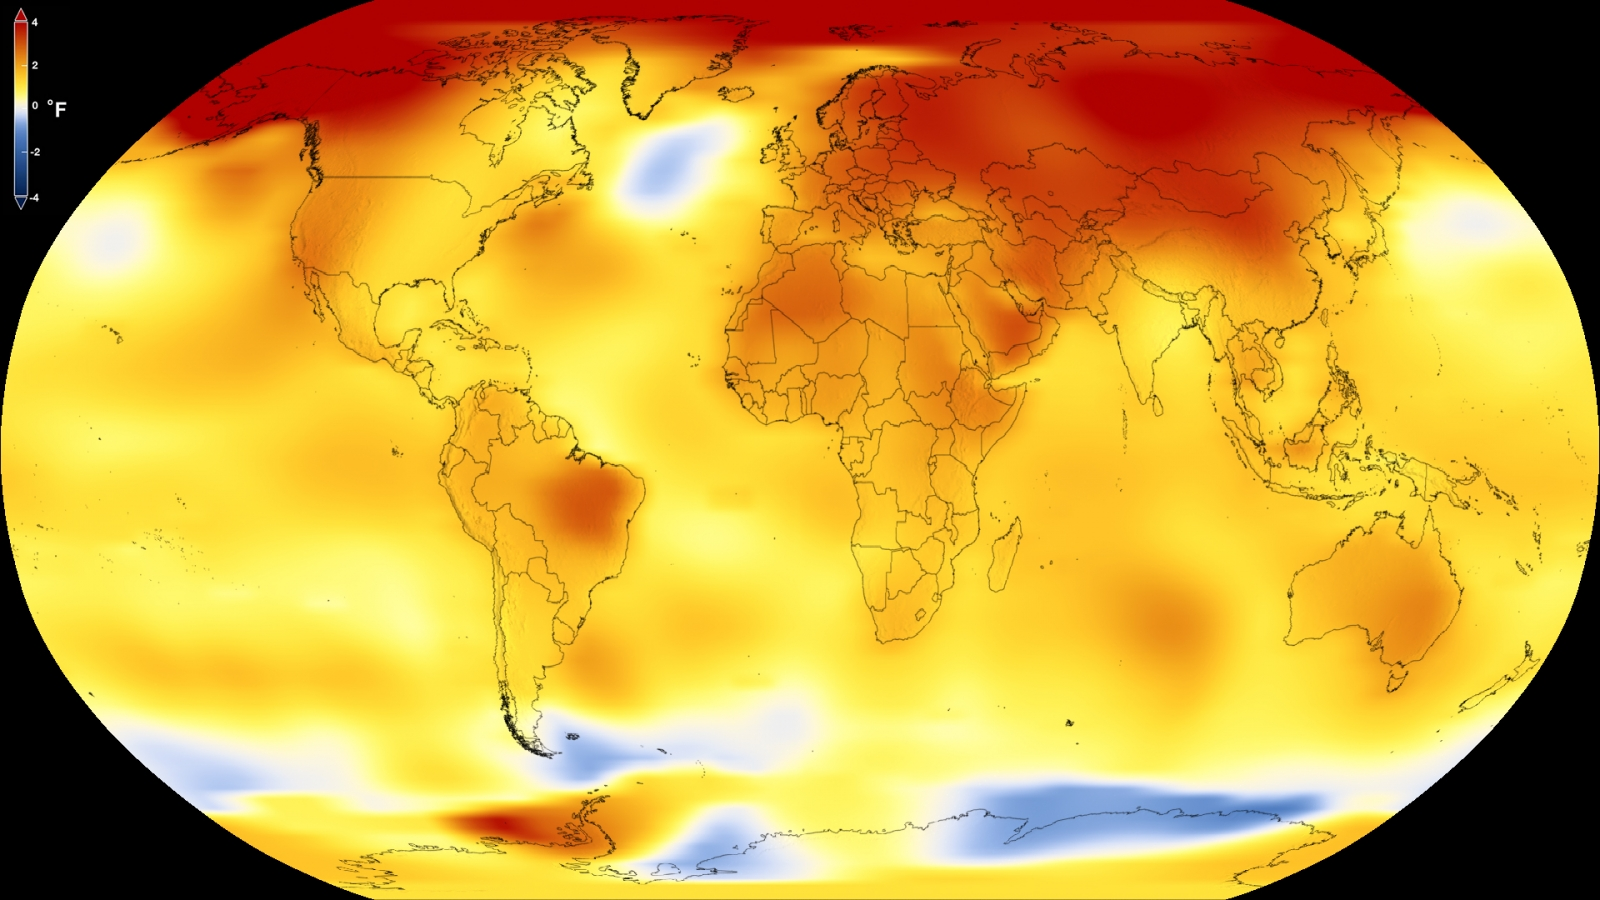 nasa-ranks-2017-as-the-second-warmest-year-on-earth-since-1880